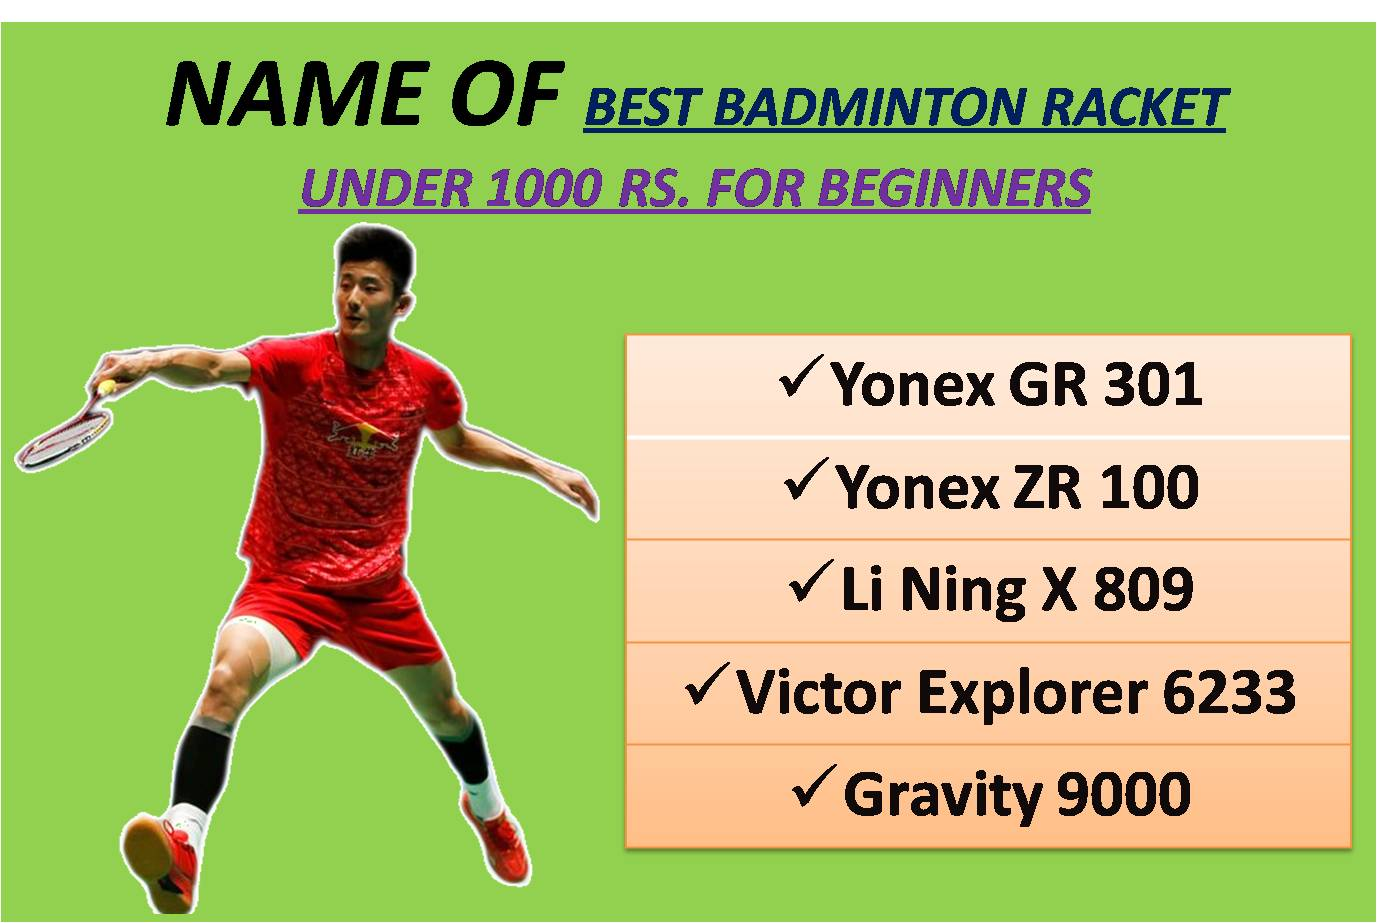 NAME OF BEST BADMINTON RACKET UNDER 1000 RS FOR BEGINNERS